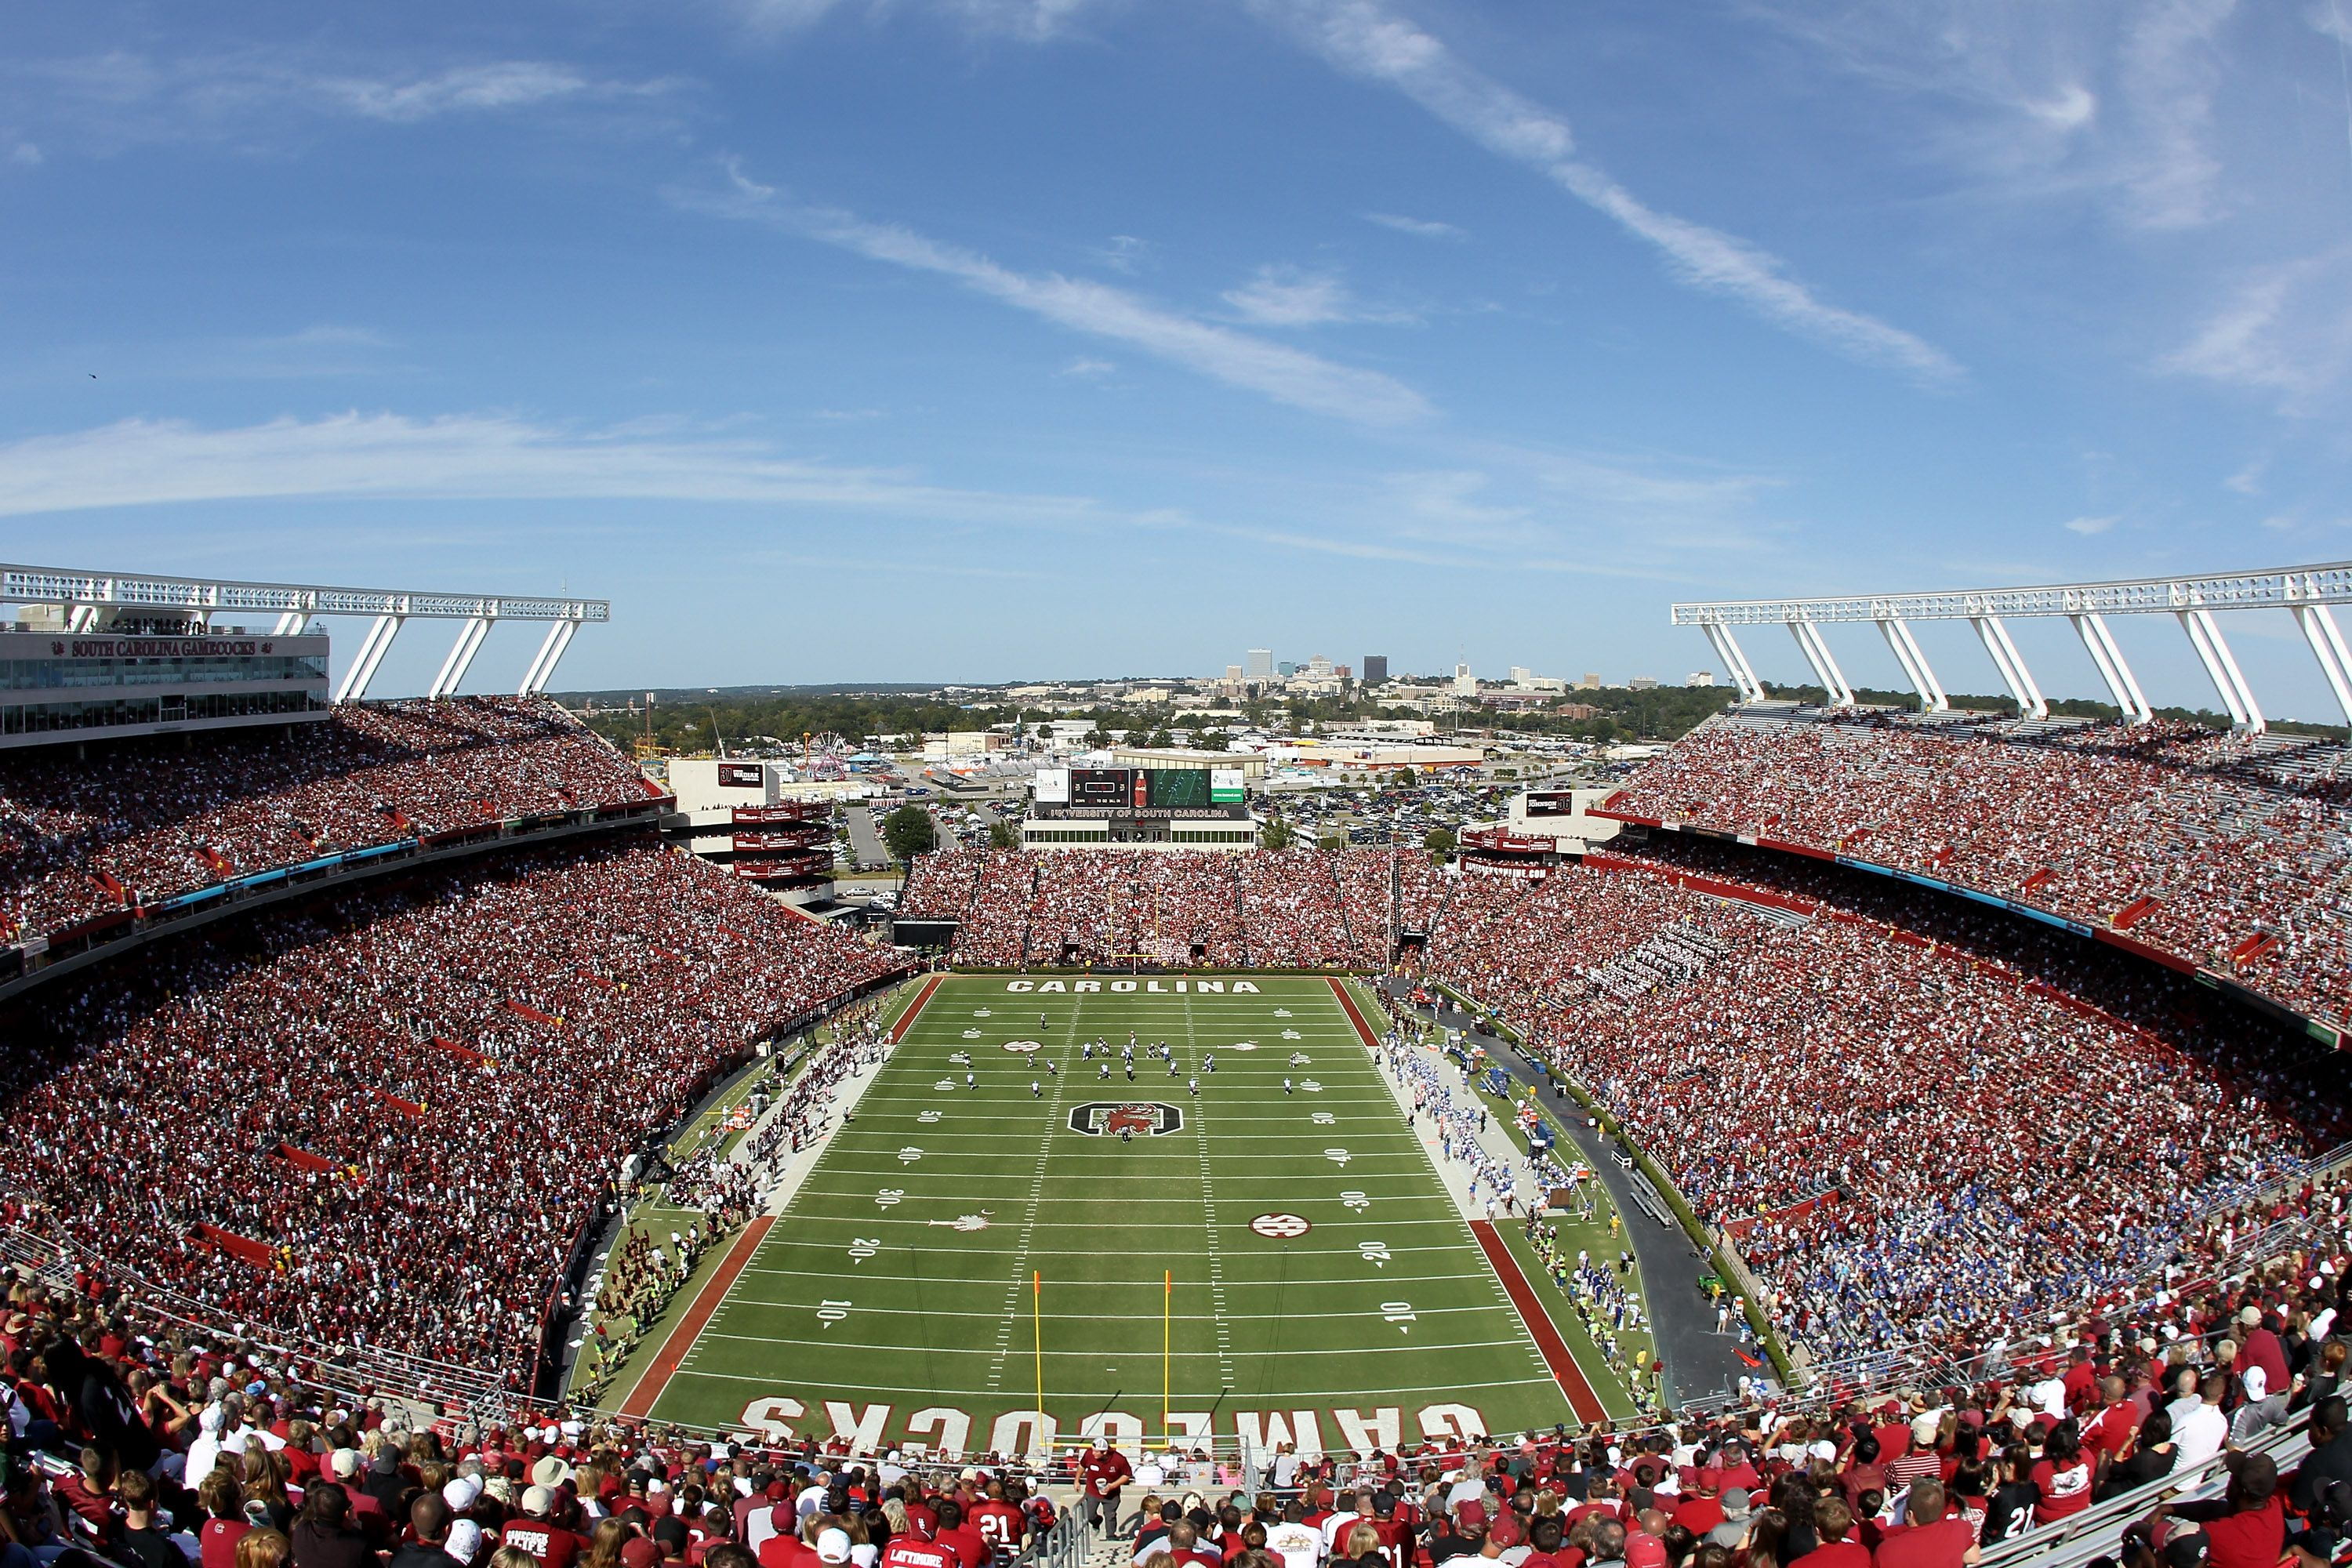 Williams-Brice Stadium is home to the University of South ...